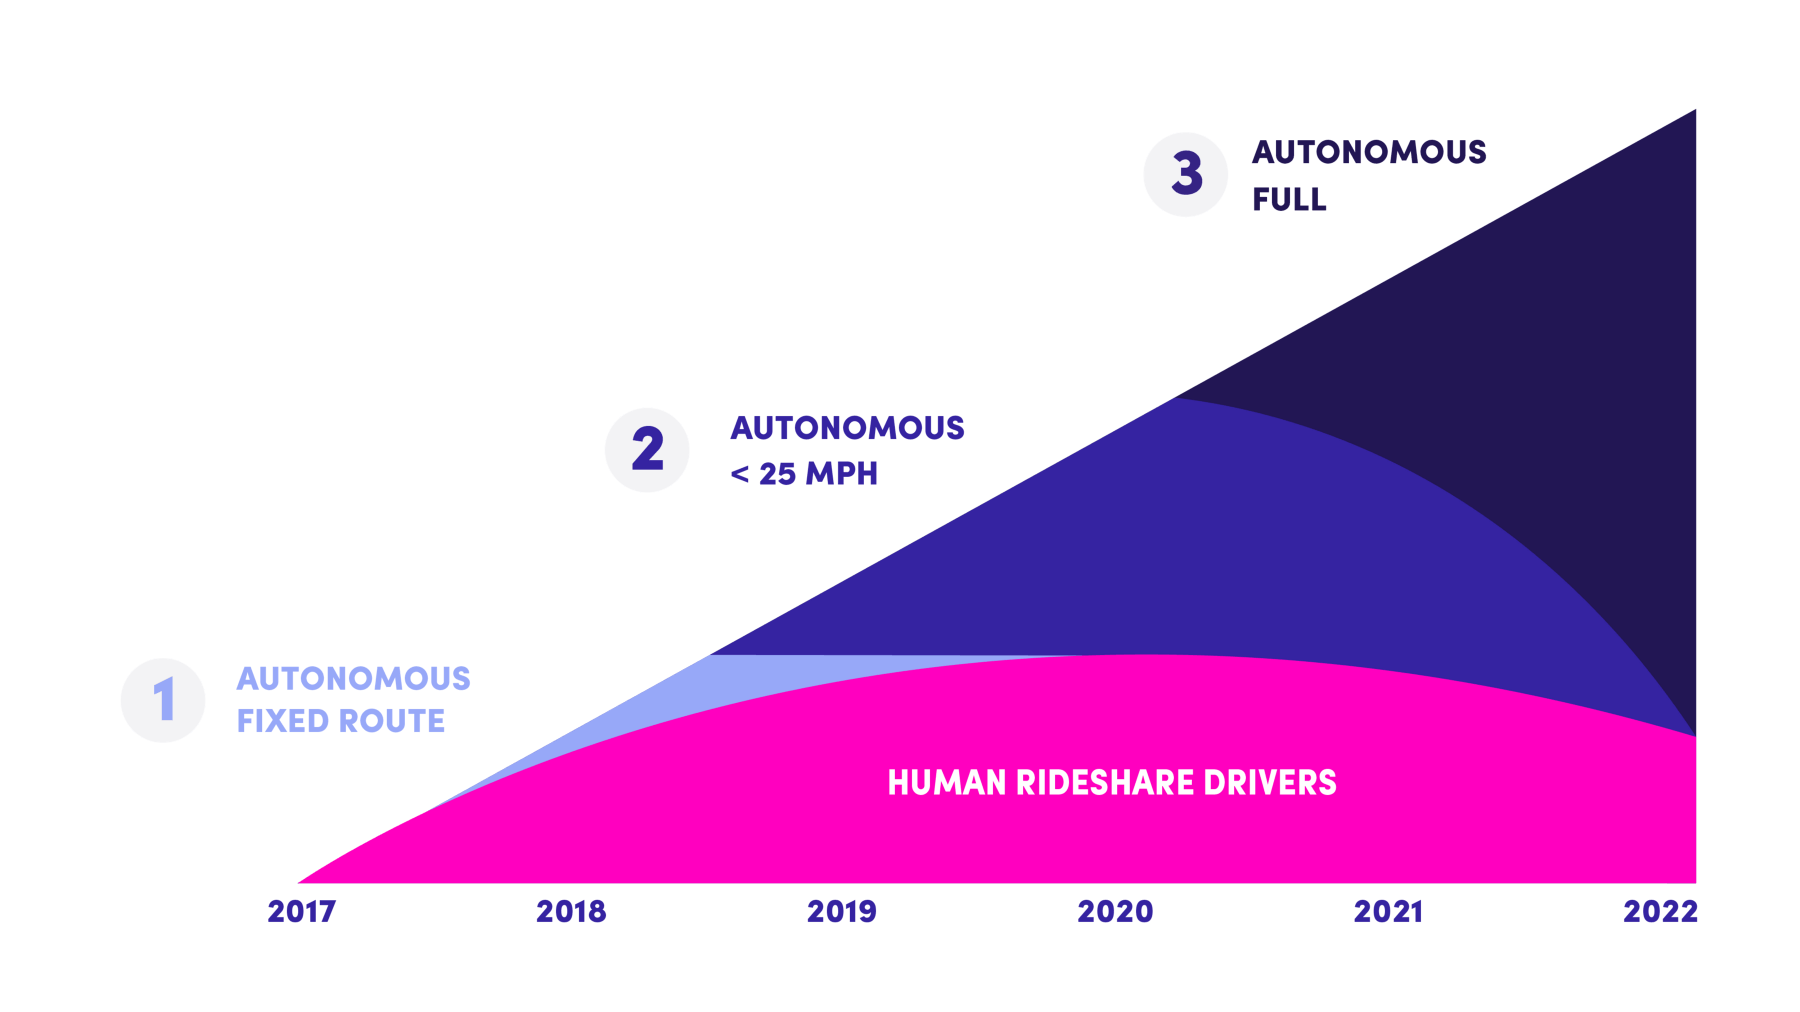 human-rideshare-drivers-projected-to-end-1-ooeho1htksxydppp8f-hwq